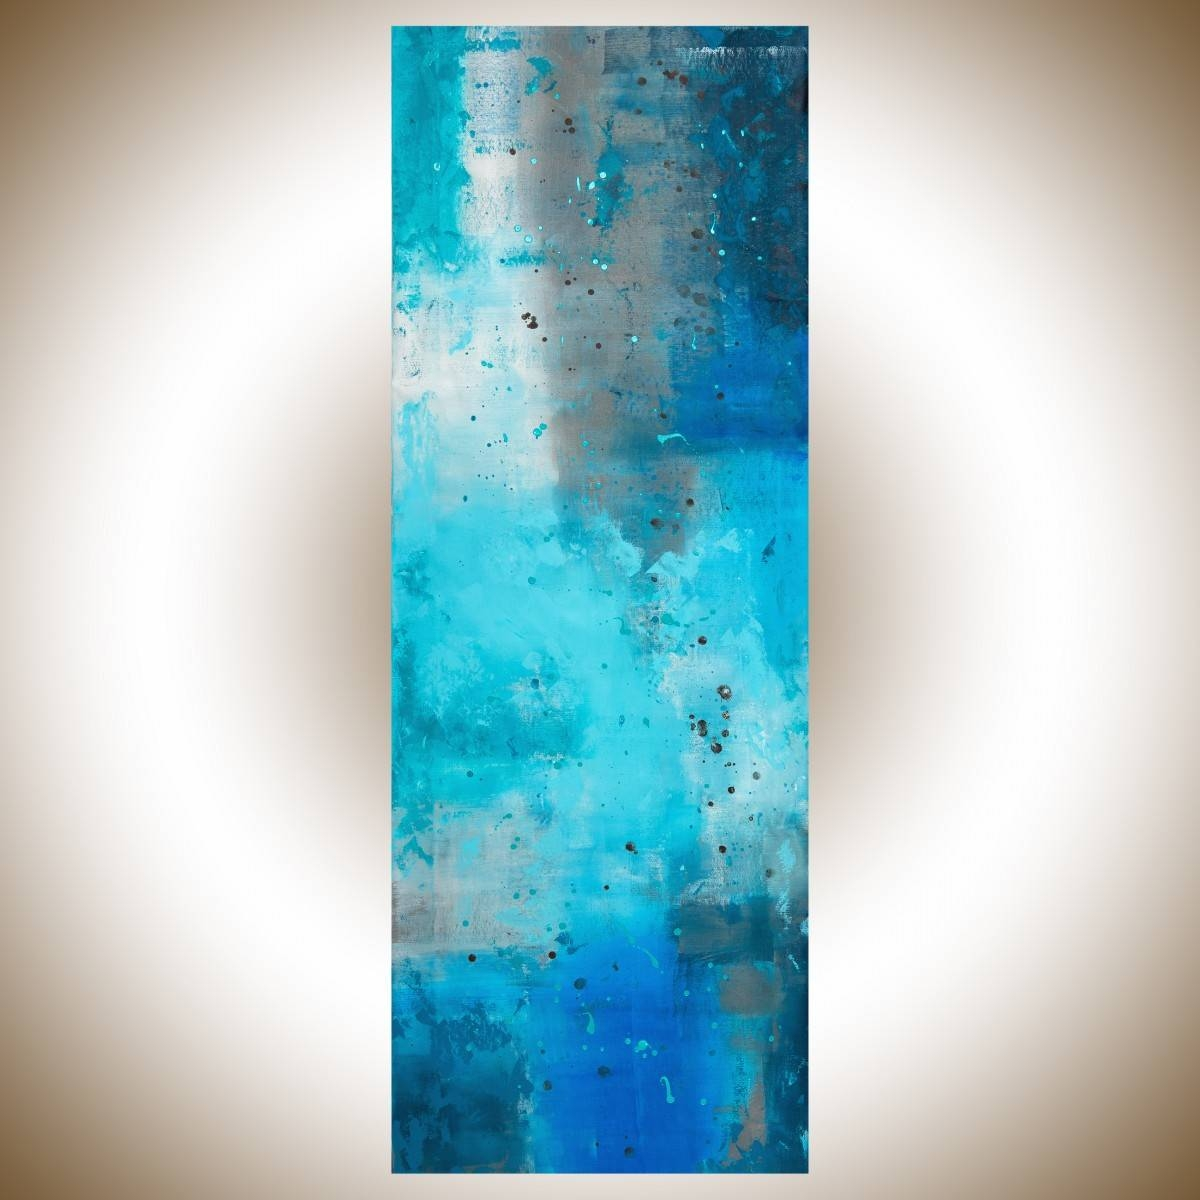 "The Mistqiqigallery 70""x24"" Un Stretched Canvas Original Within Most Recent Turquoise And Brown Wall Art (View 16 of 25)"